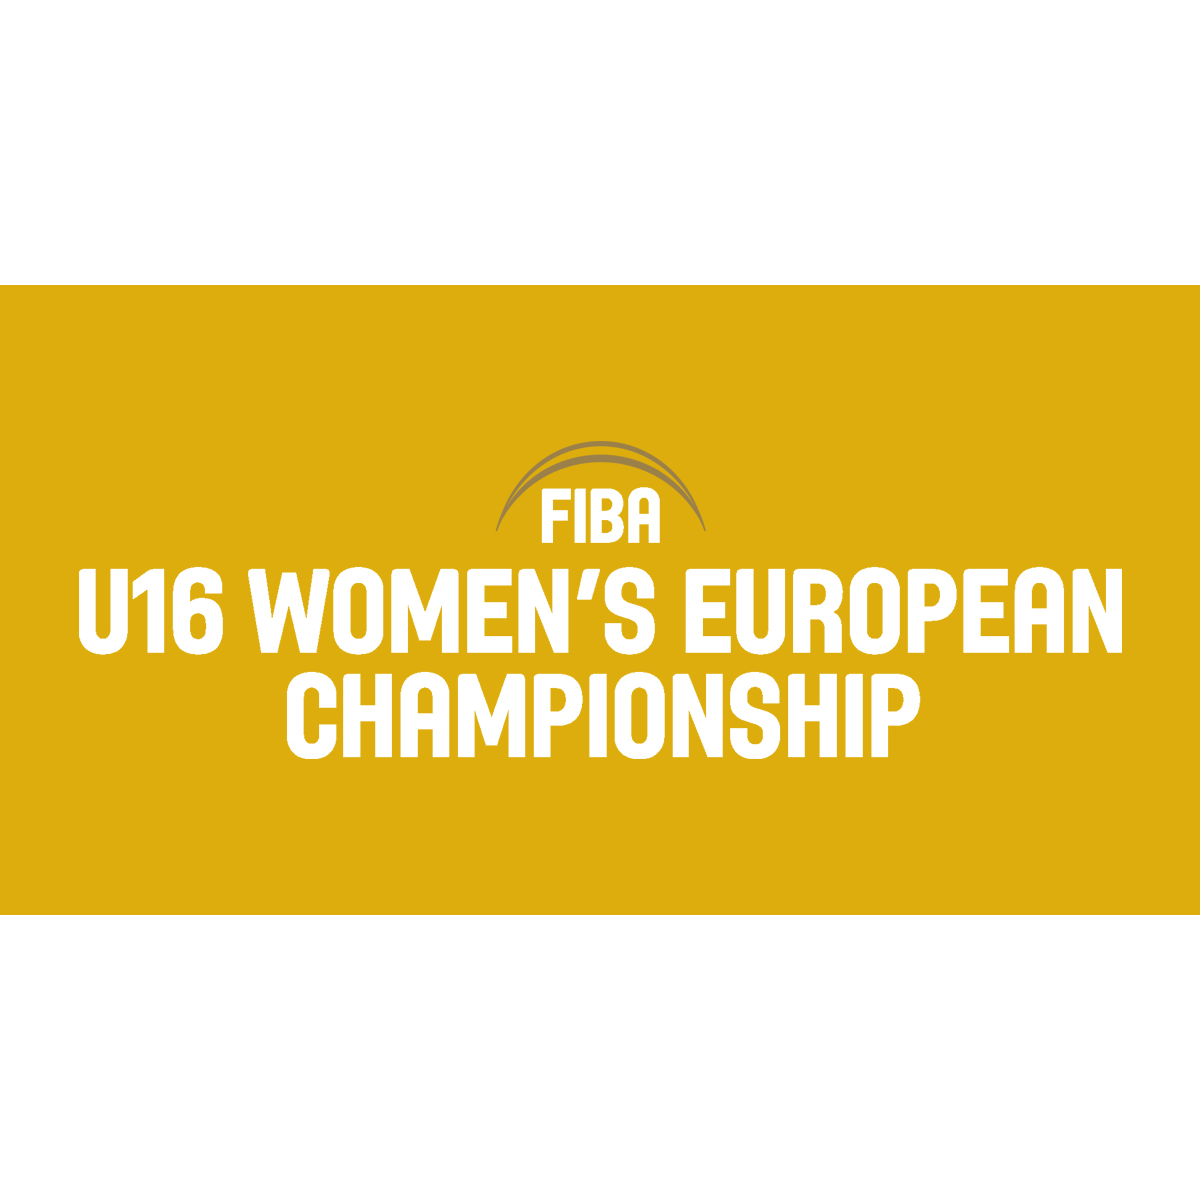 2017 FIBA U16 Women's European Basketball Championship